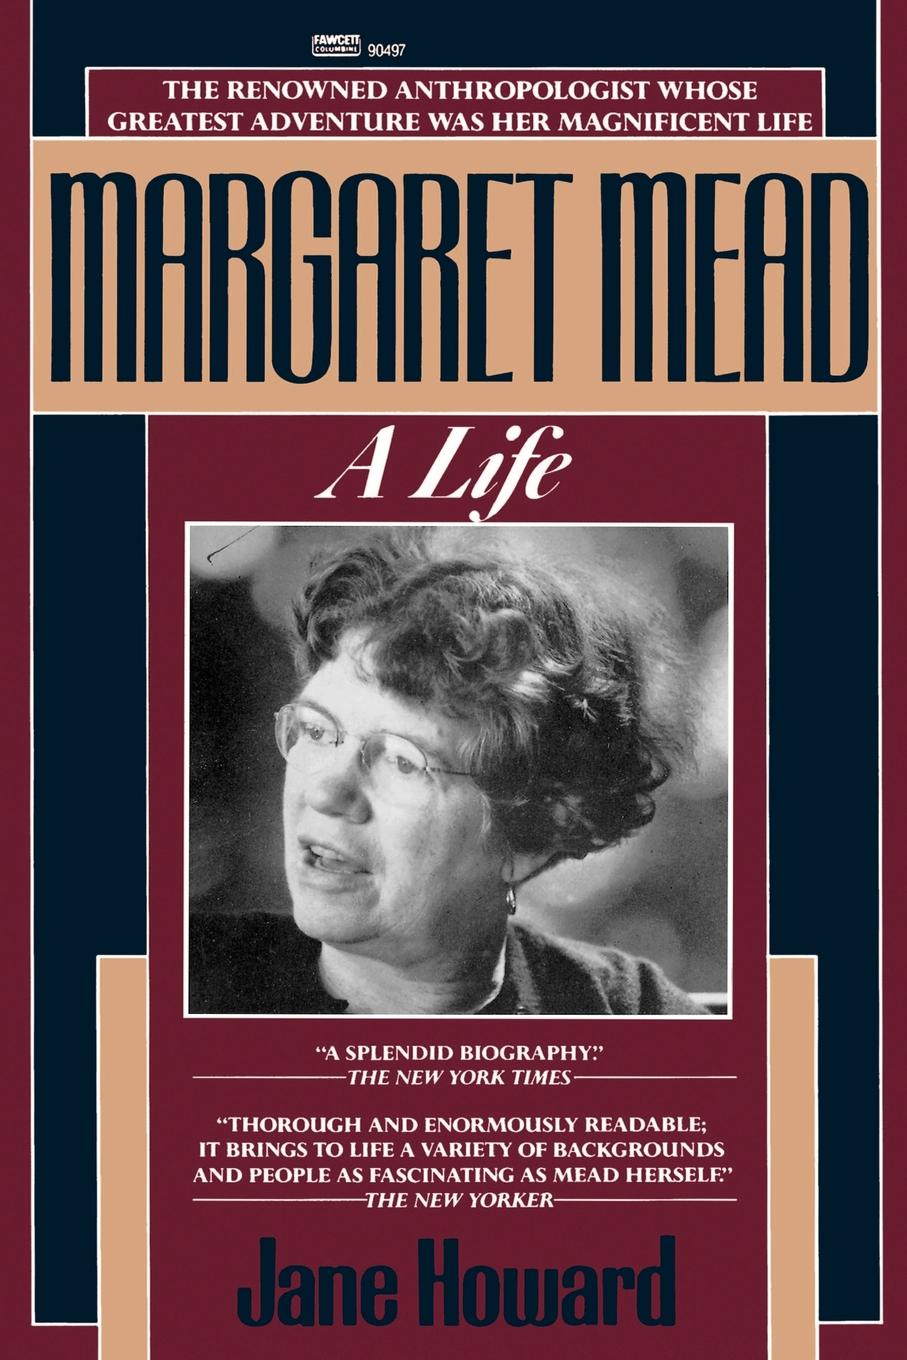 Jane Howard Margaret Mead. A Life august sander people of the 20th century page 7 page 9 page 7 page 9